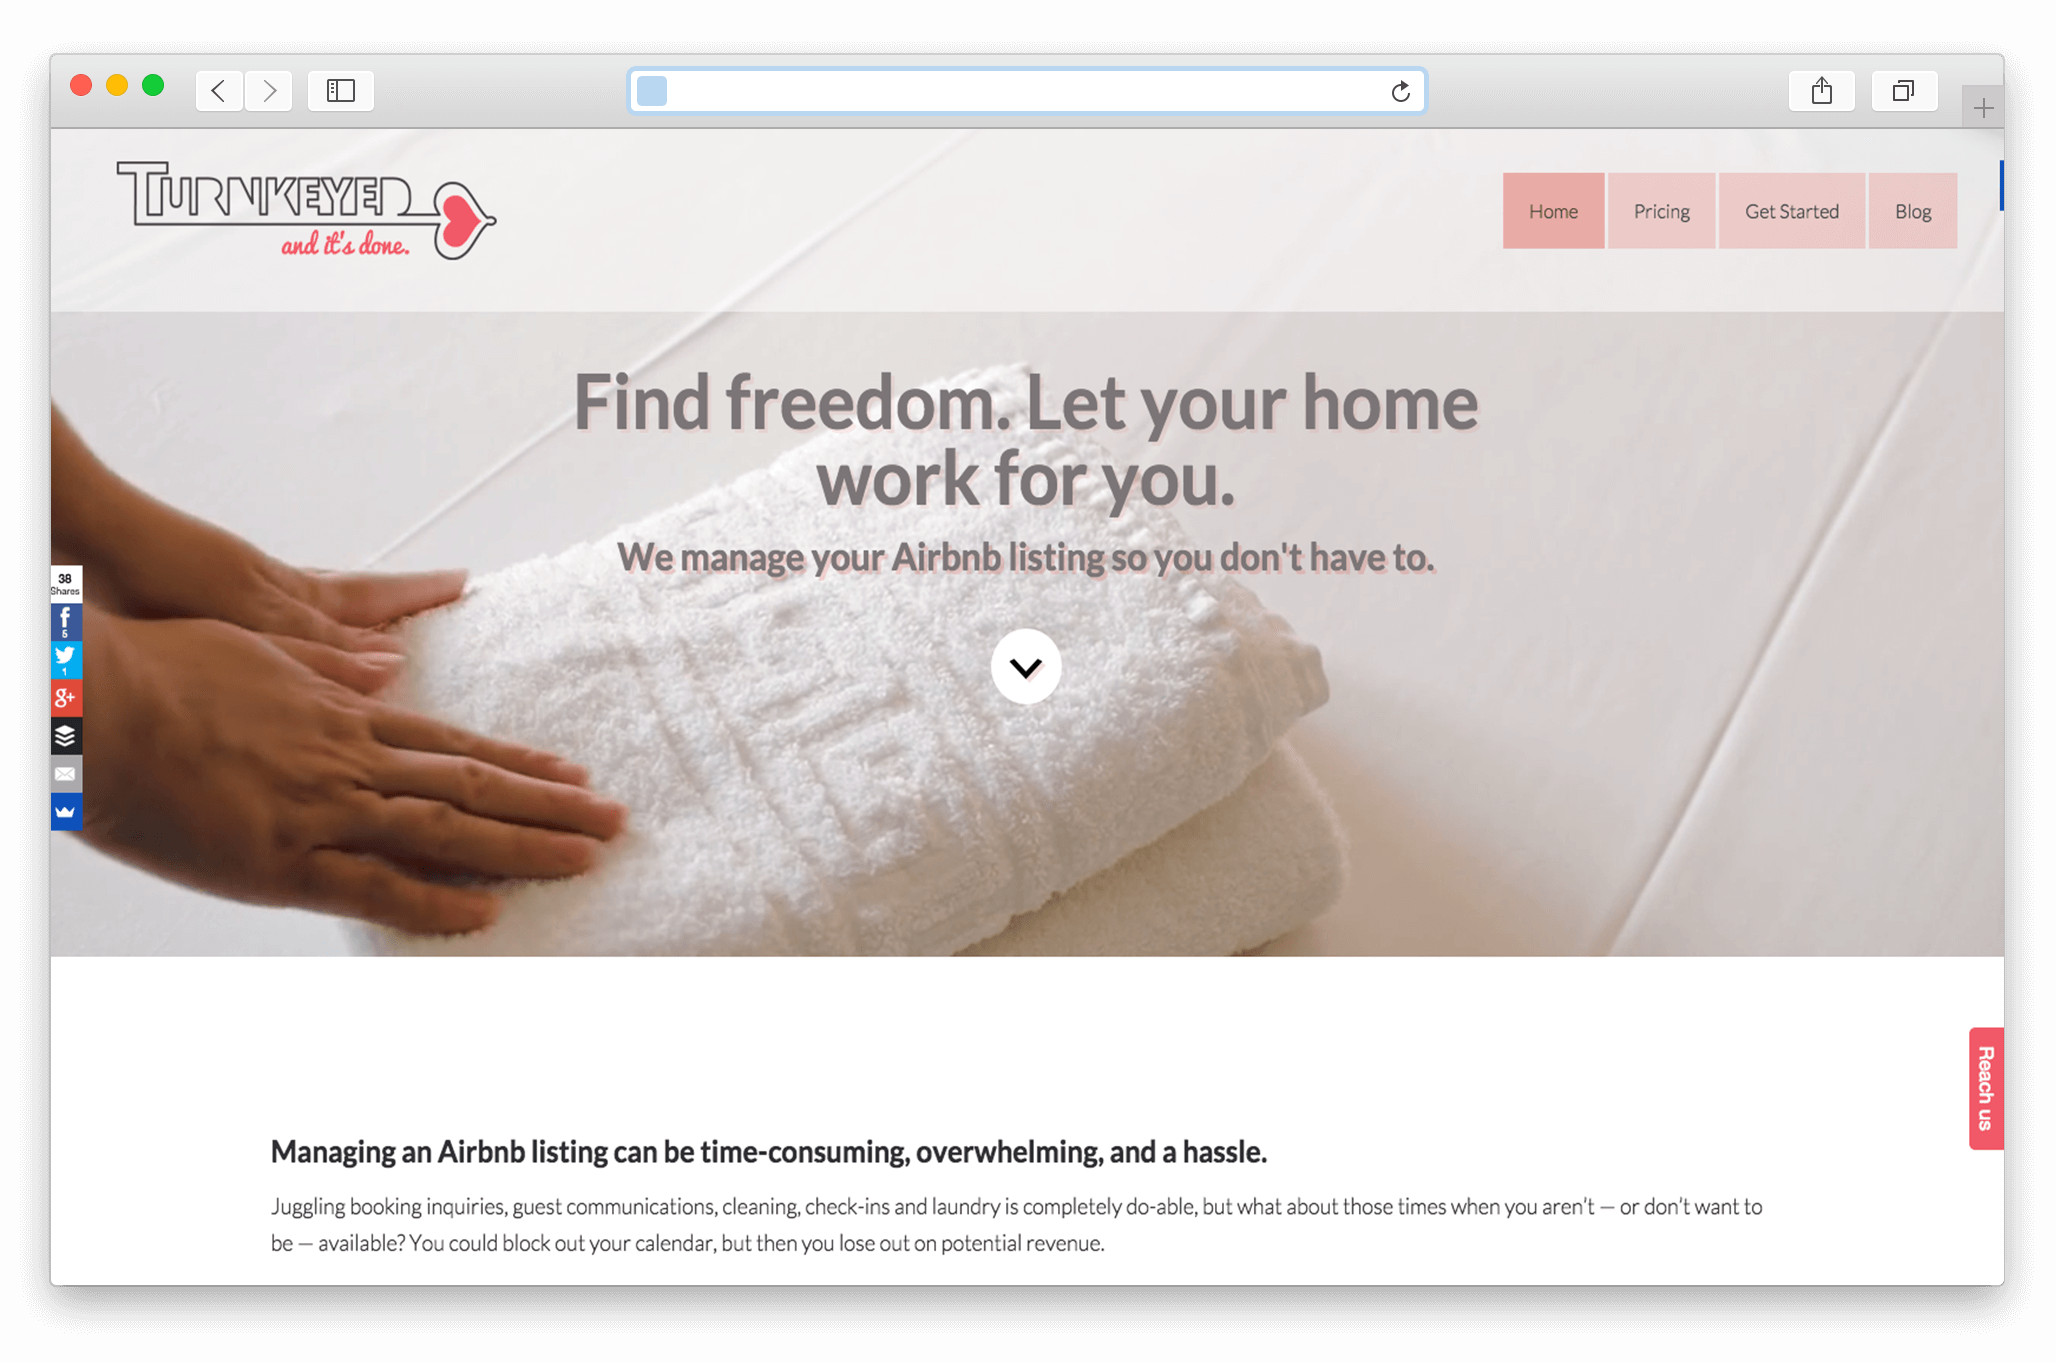 Turnkeyed Airbnb Management Services